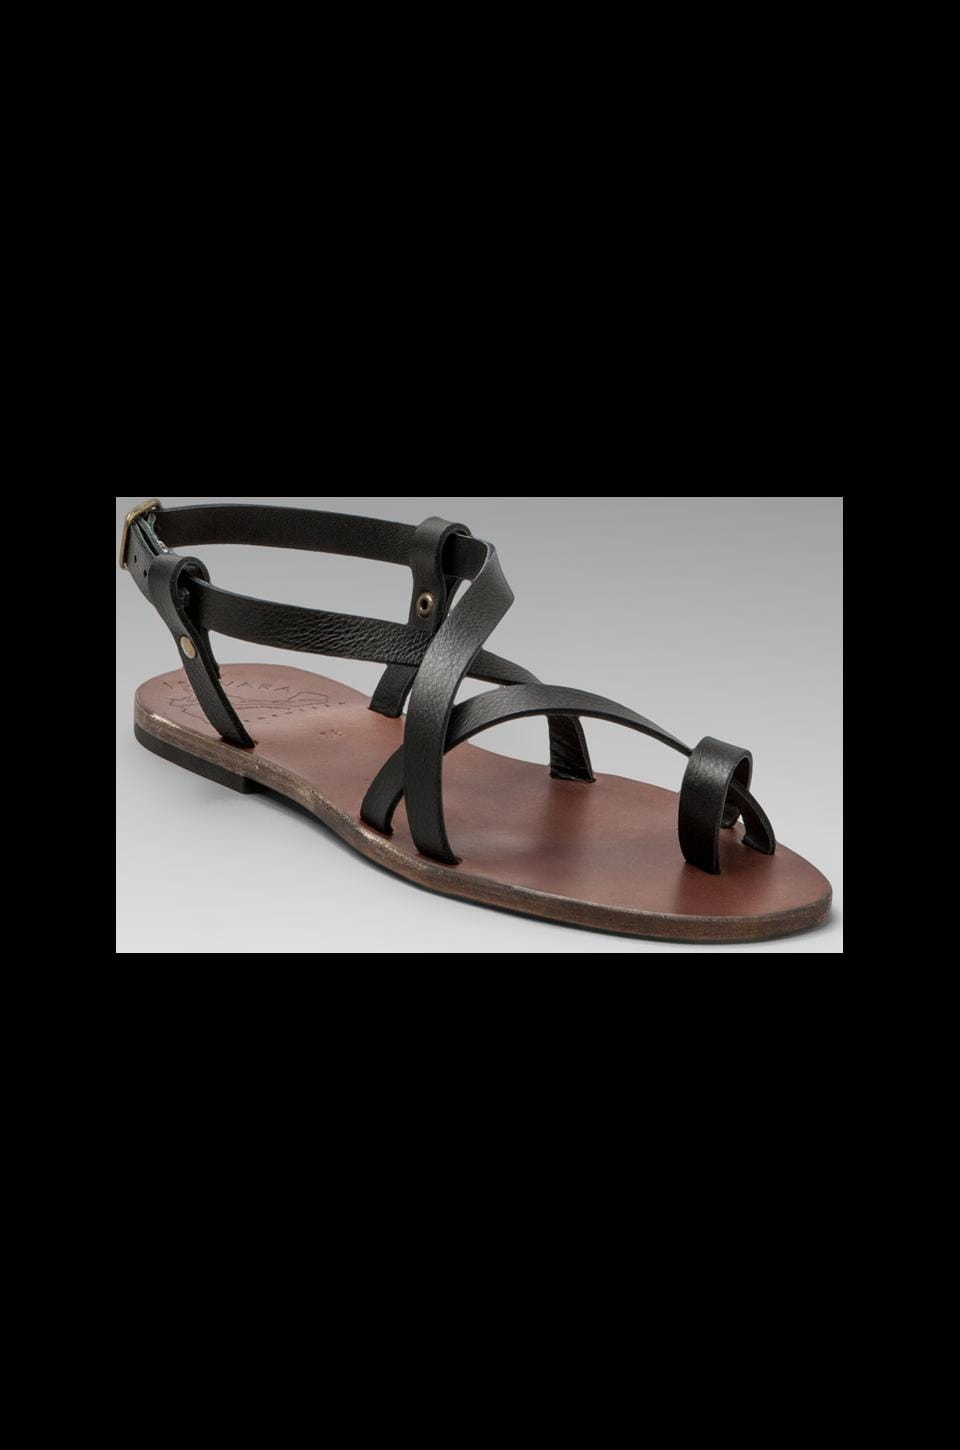 Ishvara Leather Ibiza Sandal in Black